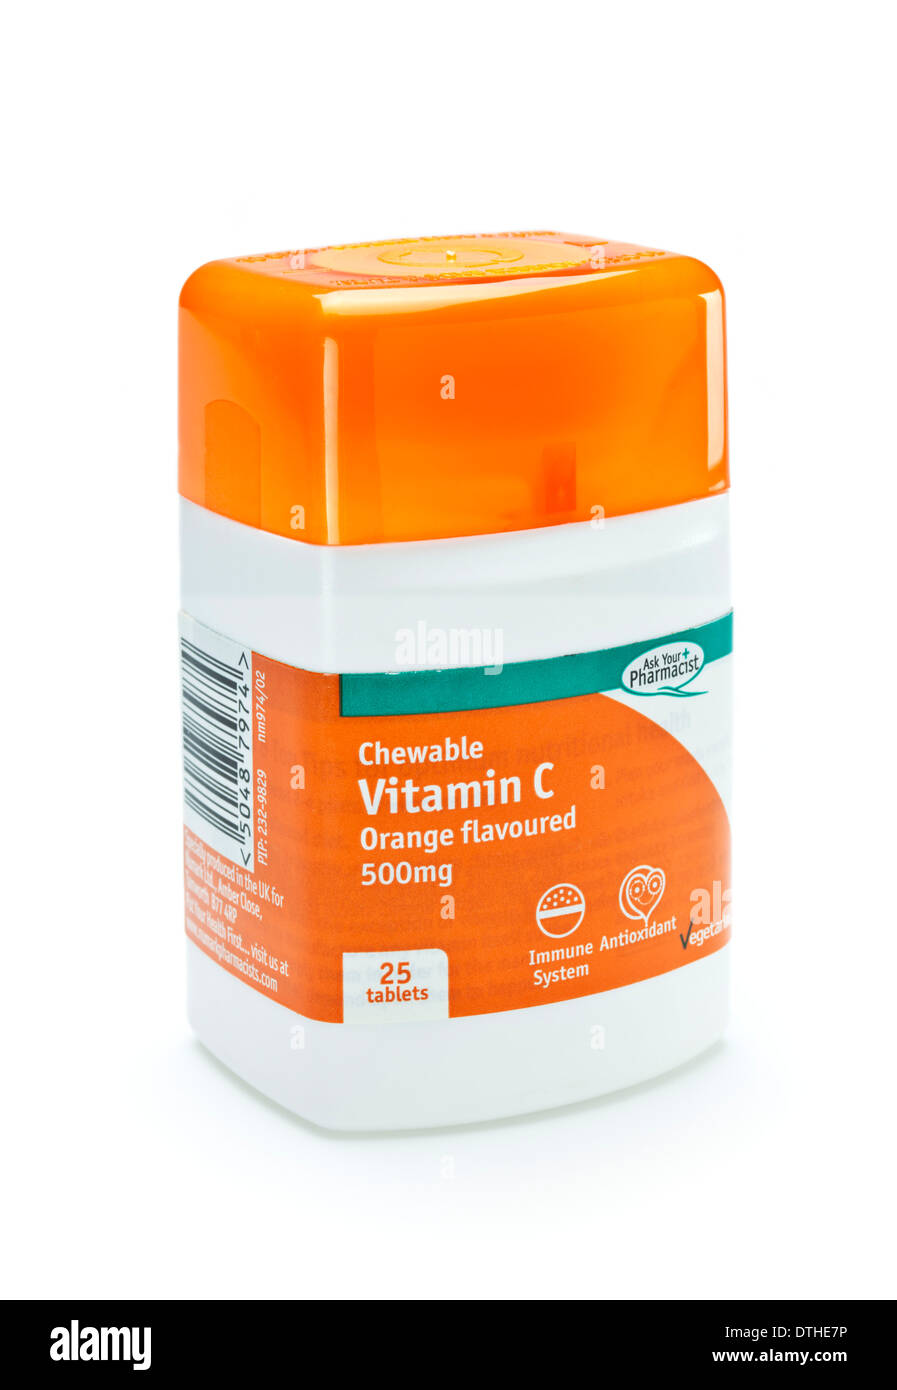 chewable Vitamin c tablets in a bottle on a white background - Stock Image